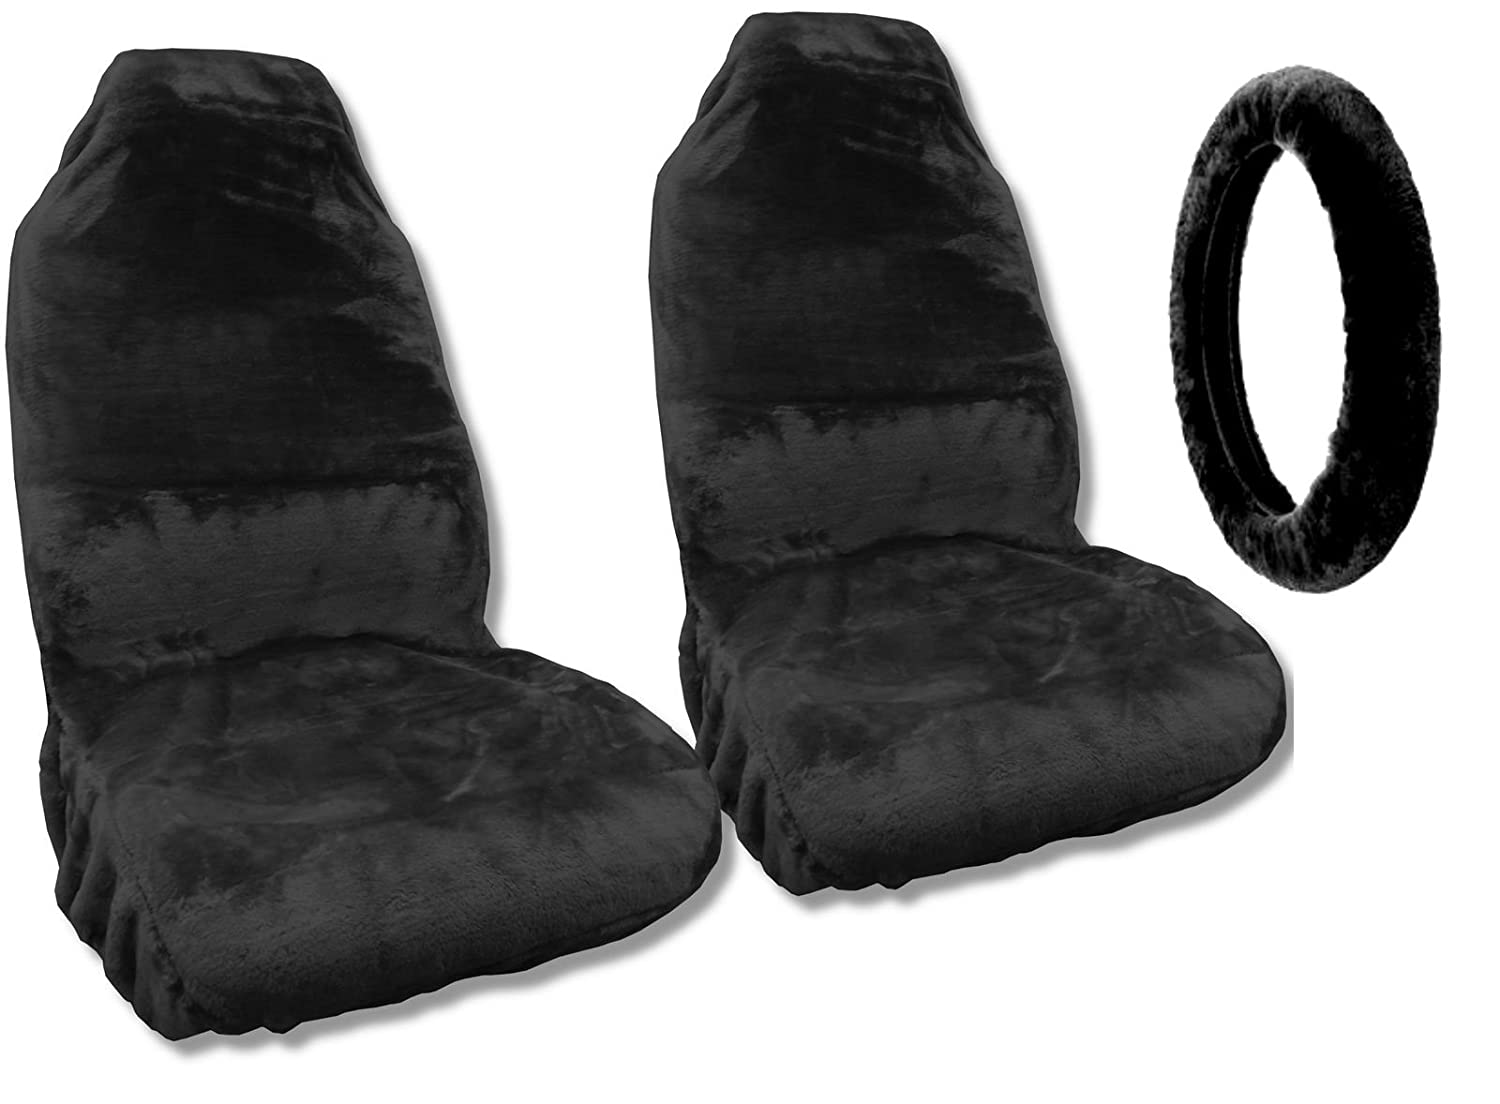 Synthetic Sheepskin Seat Covers Pair Steering Wheel 1942 Chevy Truck Cover Black Plush Fleece Fits Automotive